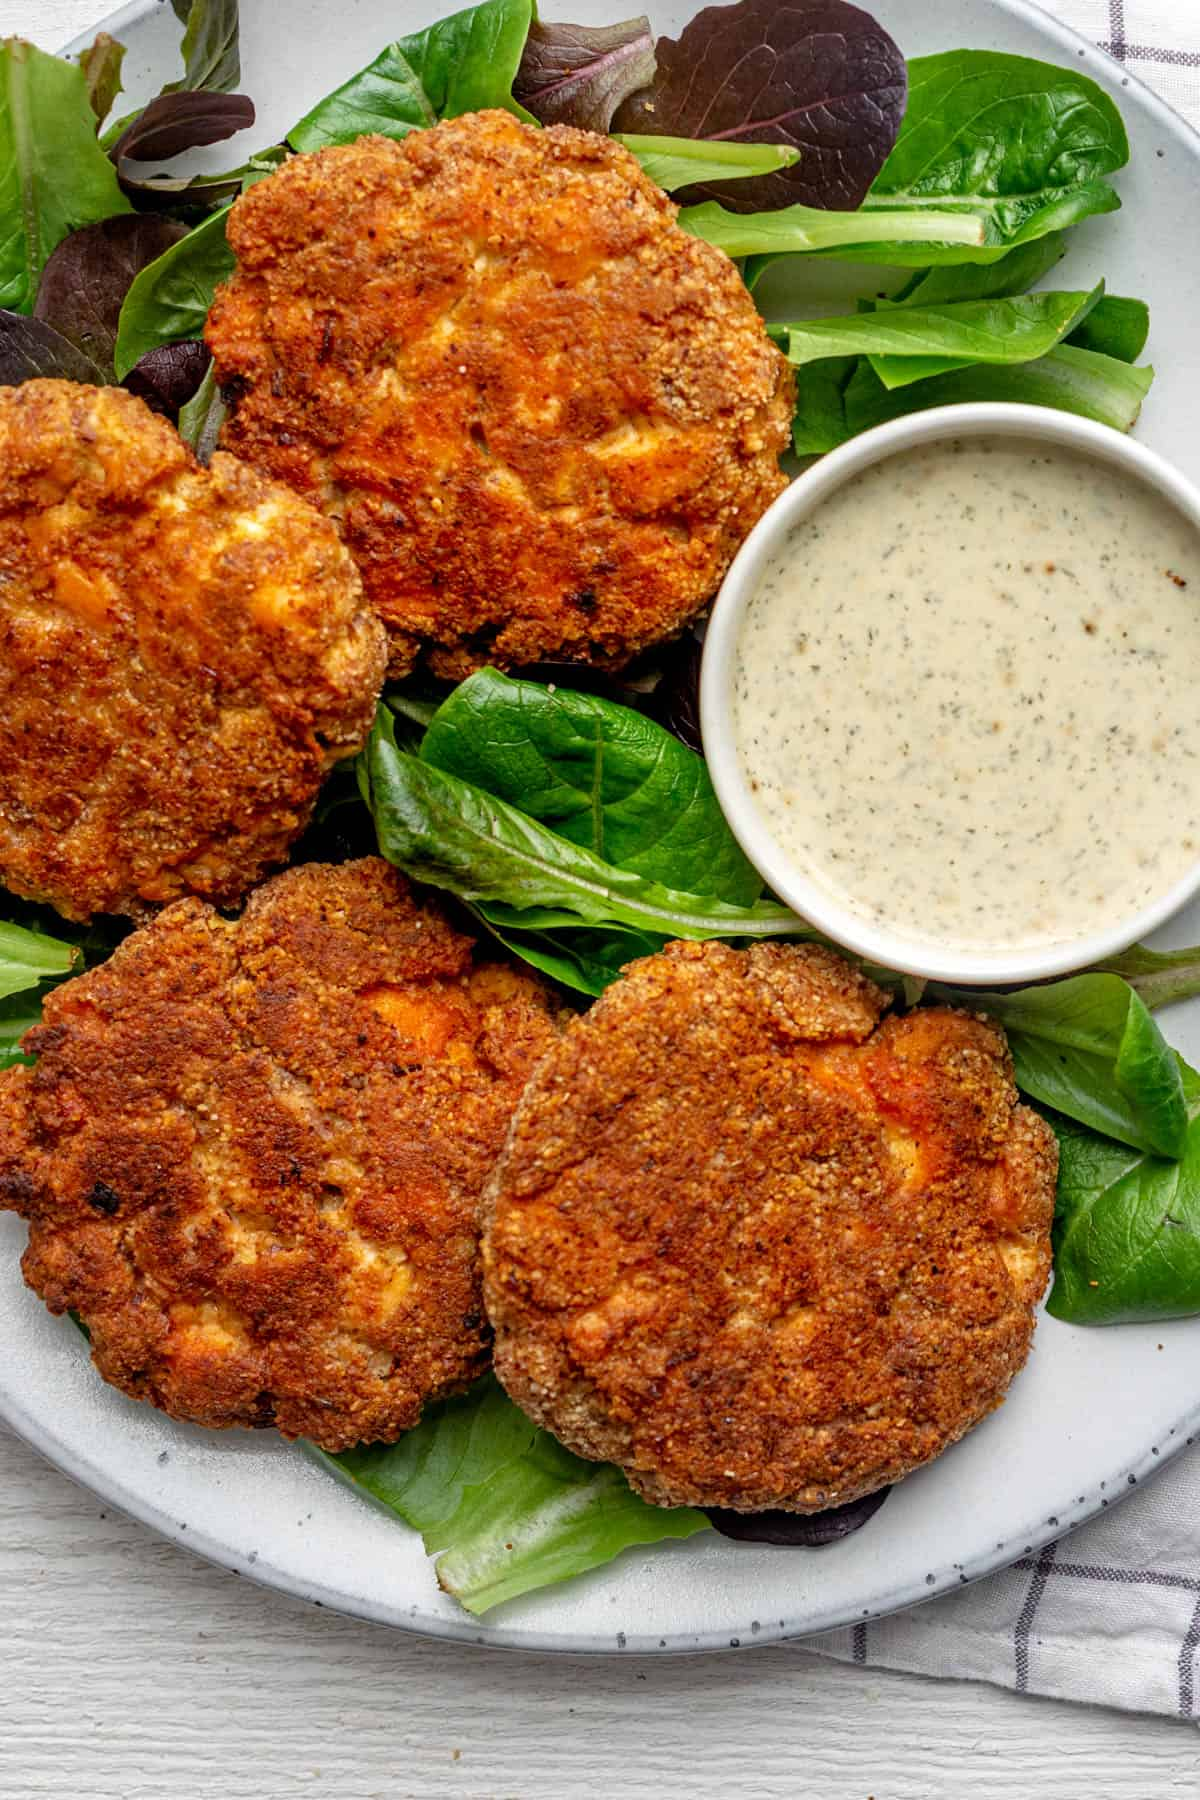 Close up shot of the salmon cakes on bed of greens with dipping sauce